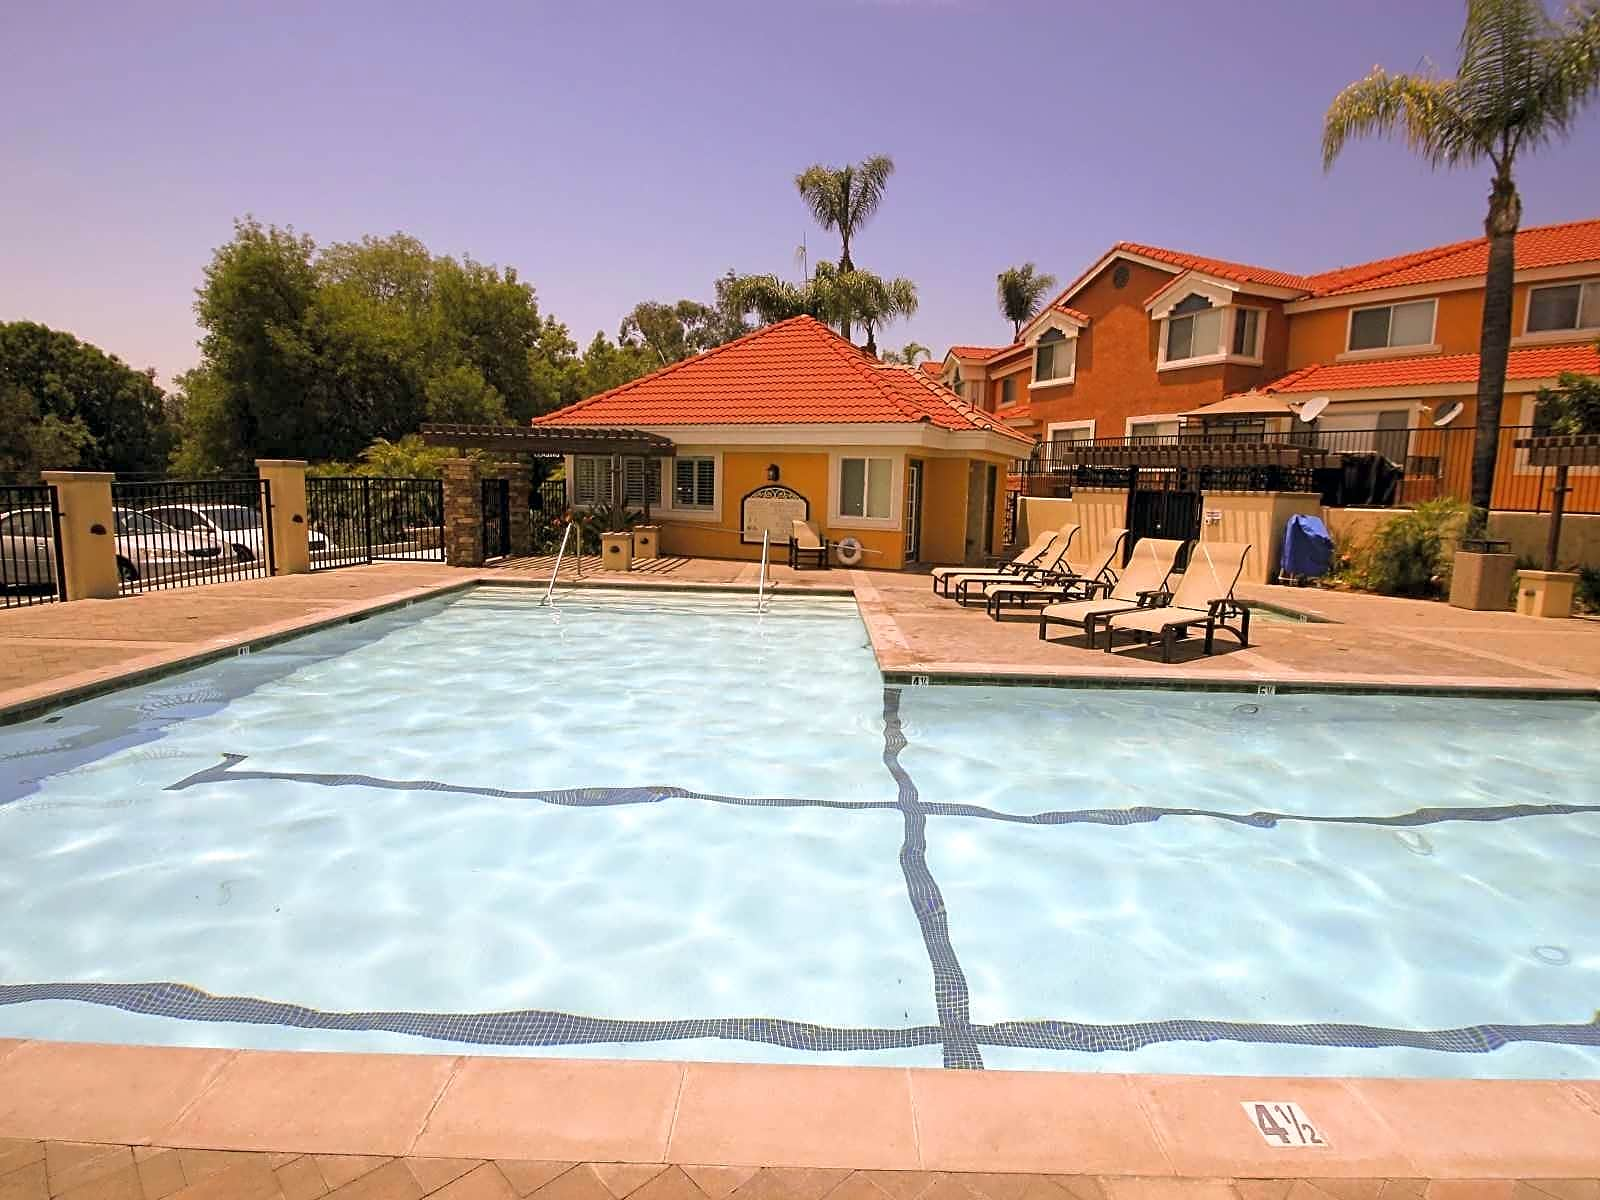 Country Club Villas Amp Terrace Apartments Upland Ca 91784